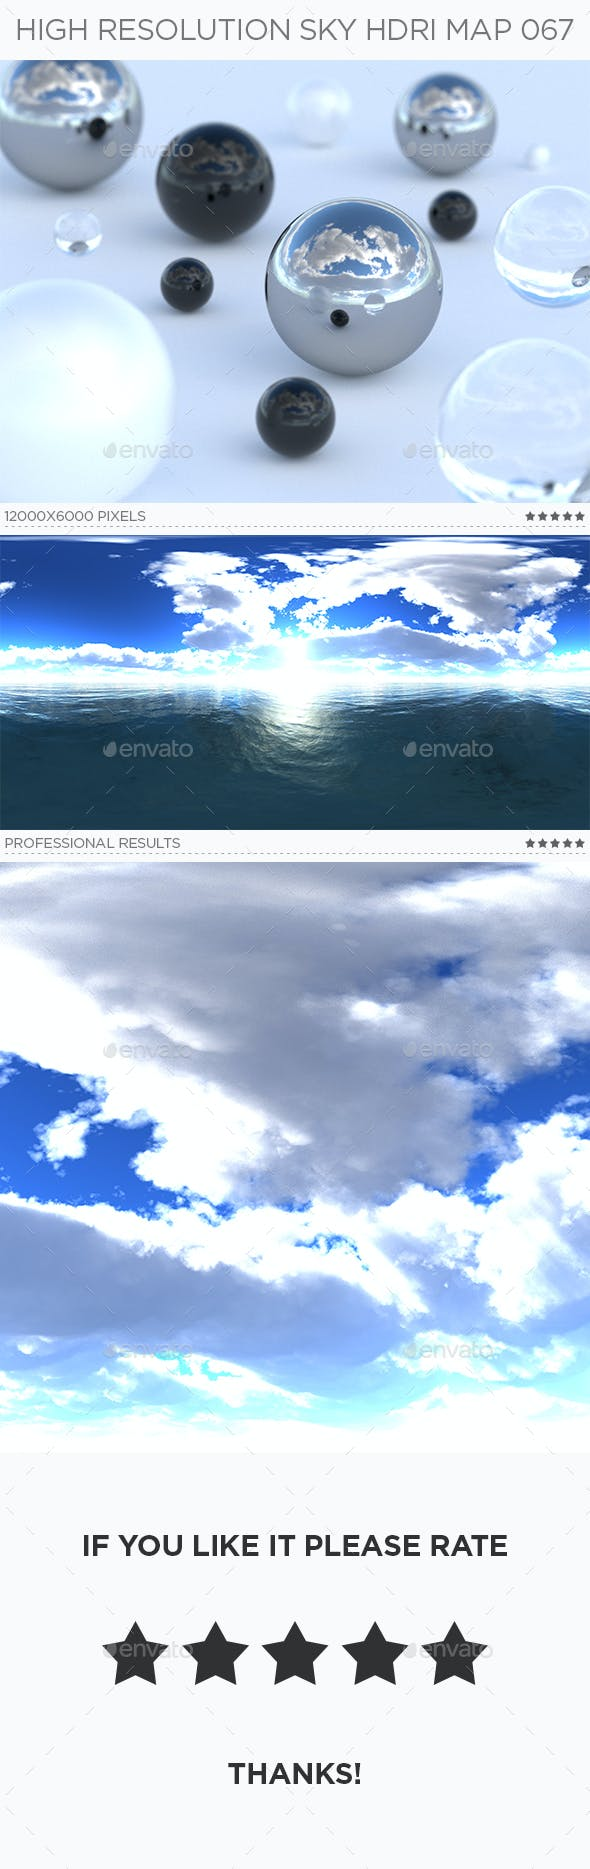 High Resolution Sky HDRi Map 067 - 3DOcean Item for Sale